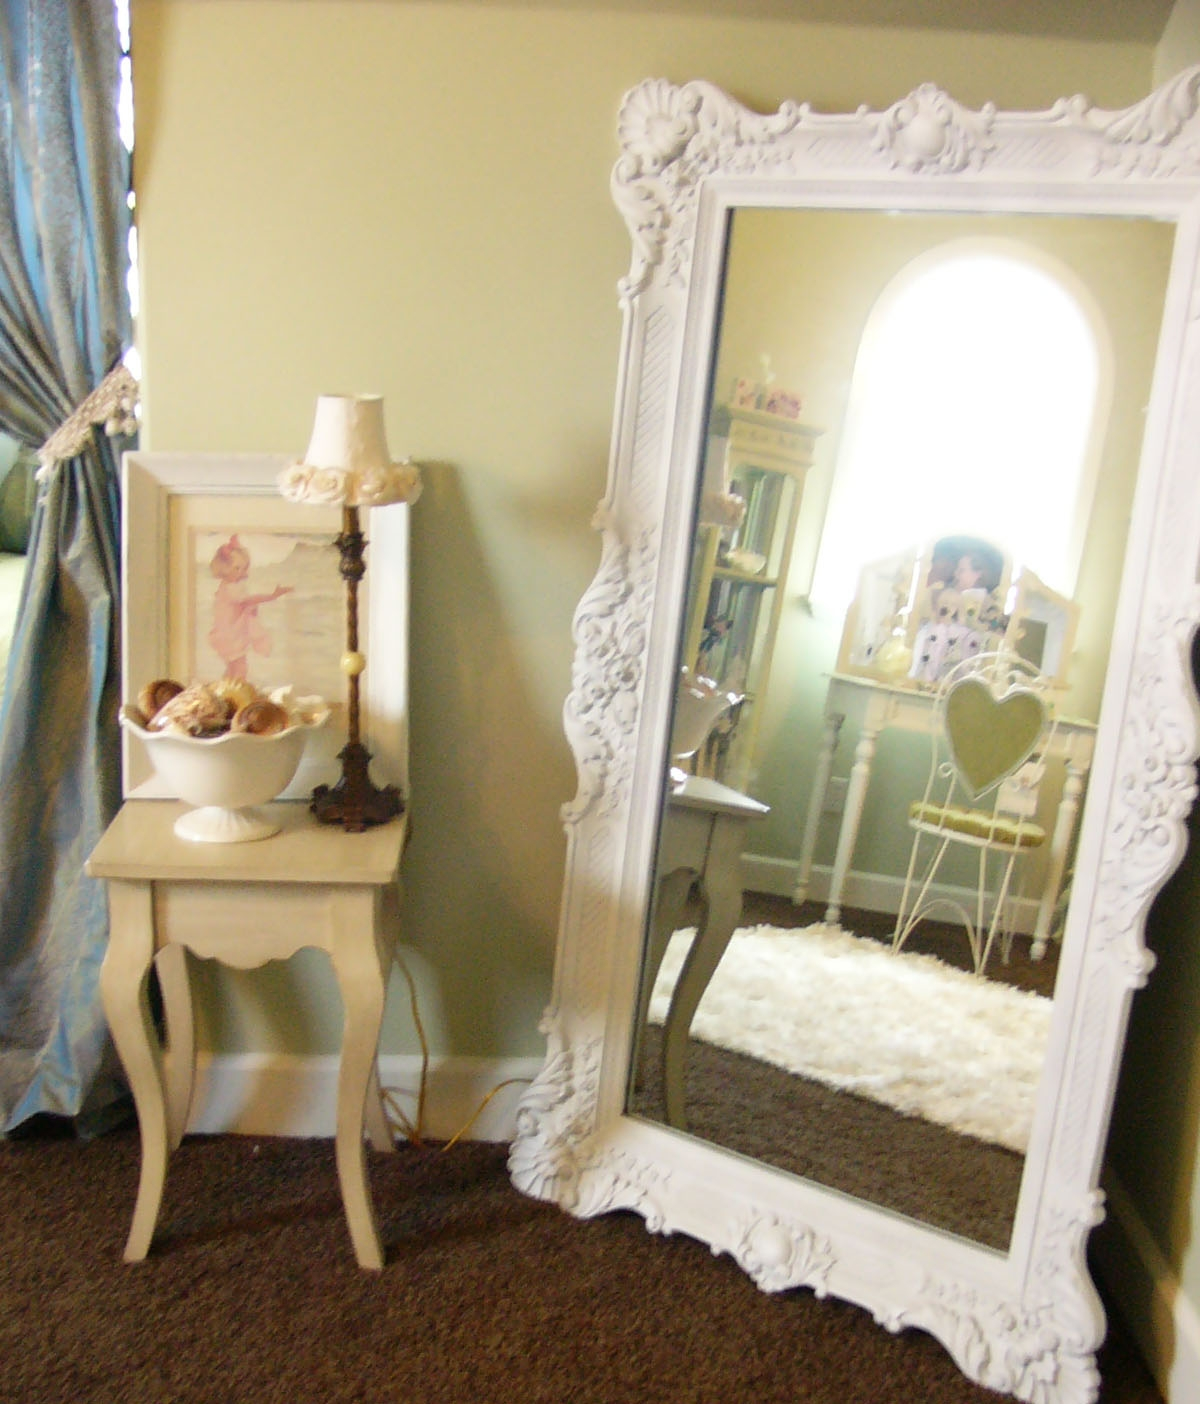 Flooring Marvelous Oversized Floor Mirror Image Concept Xl Wide In Shabby Chic Floor Mirror (Image 10 of 15)